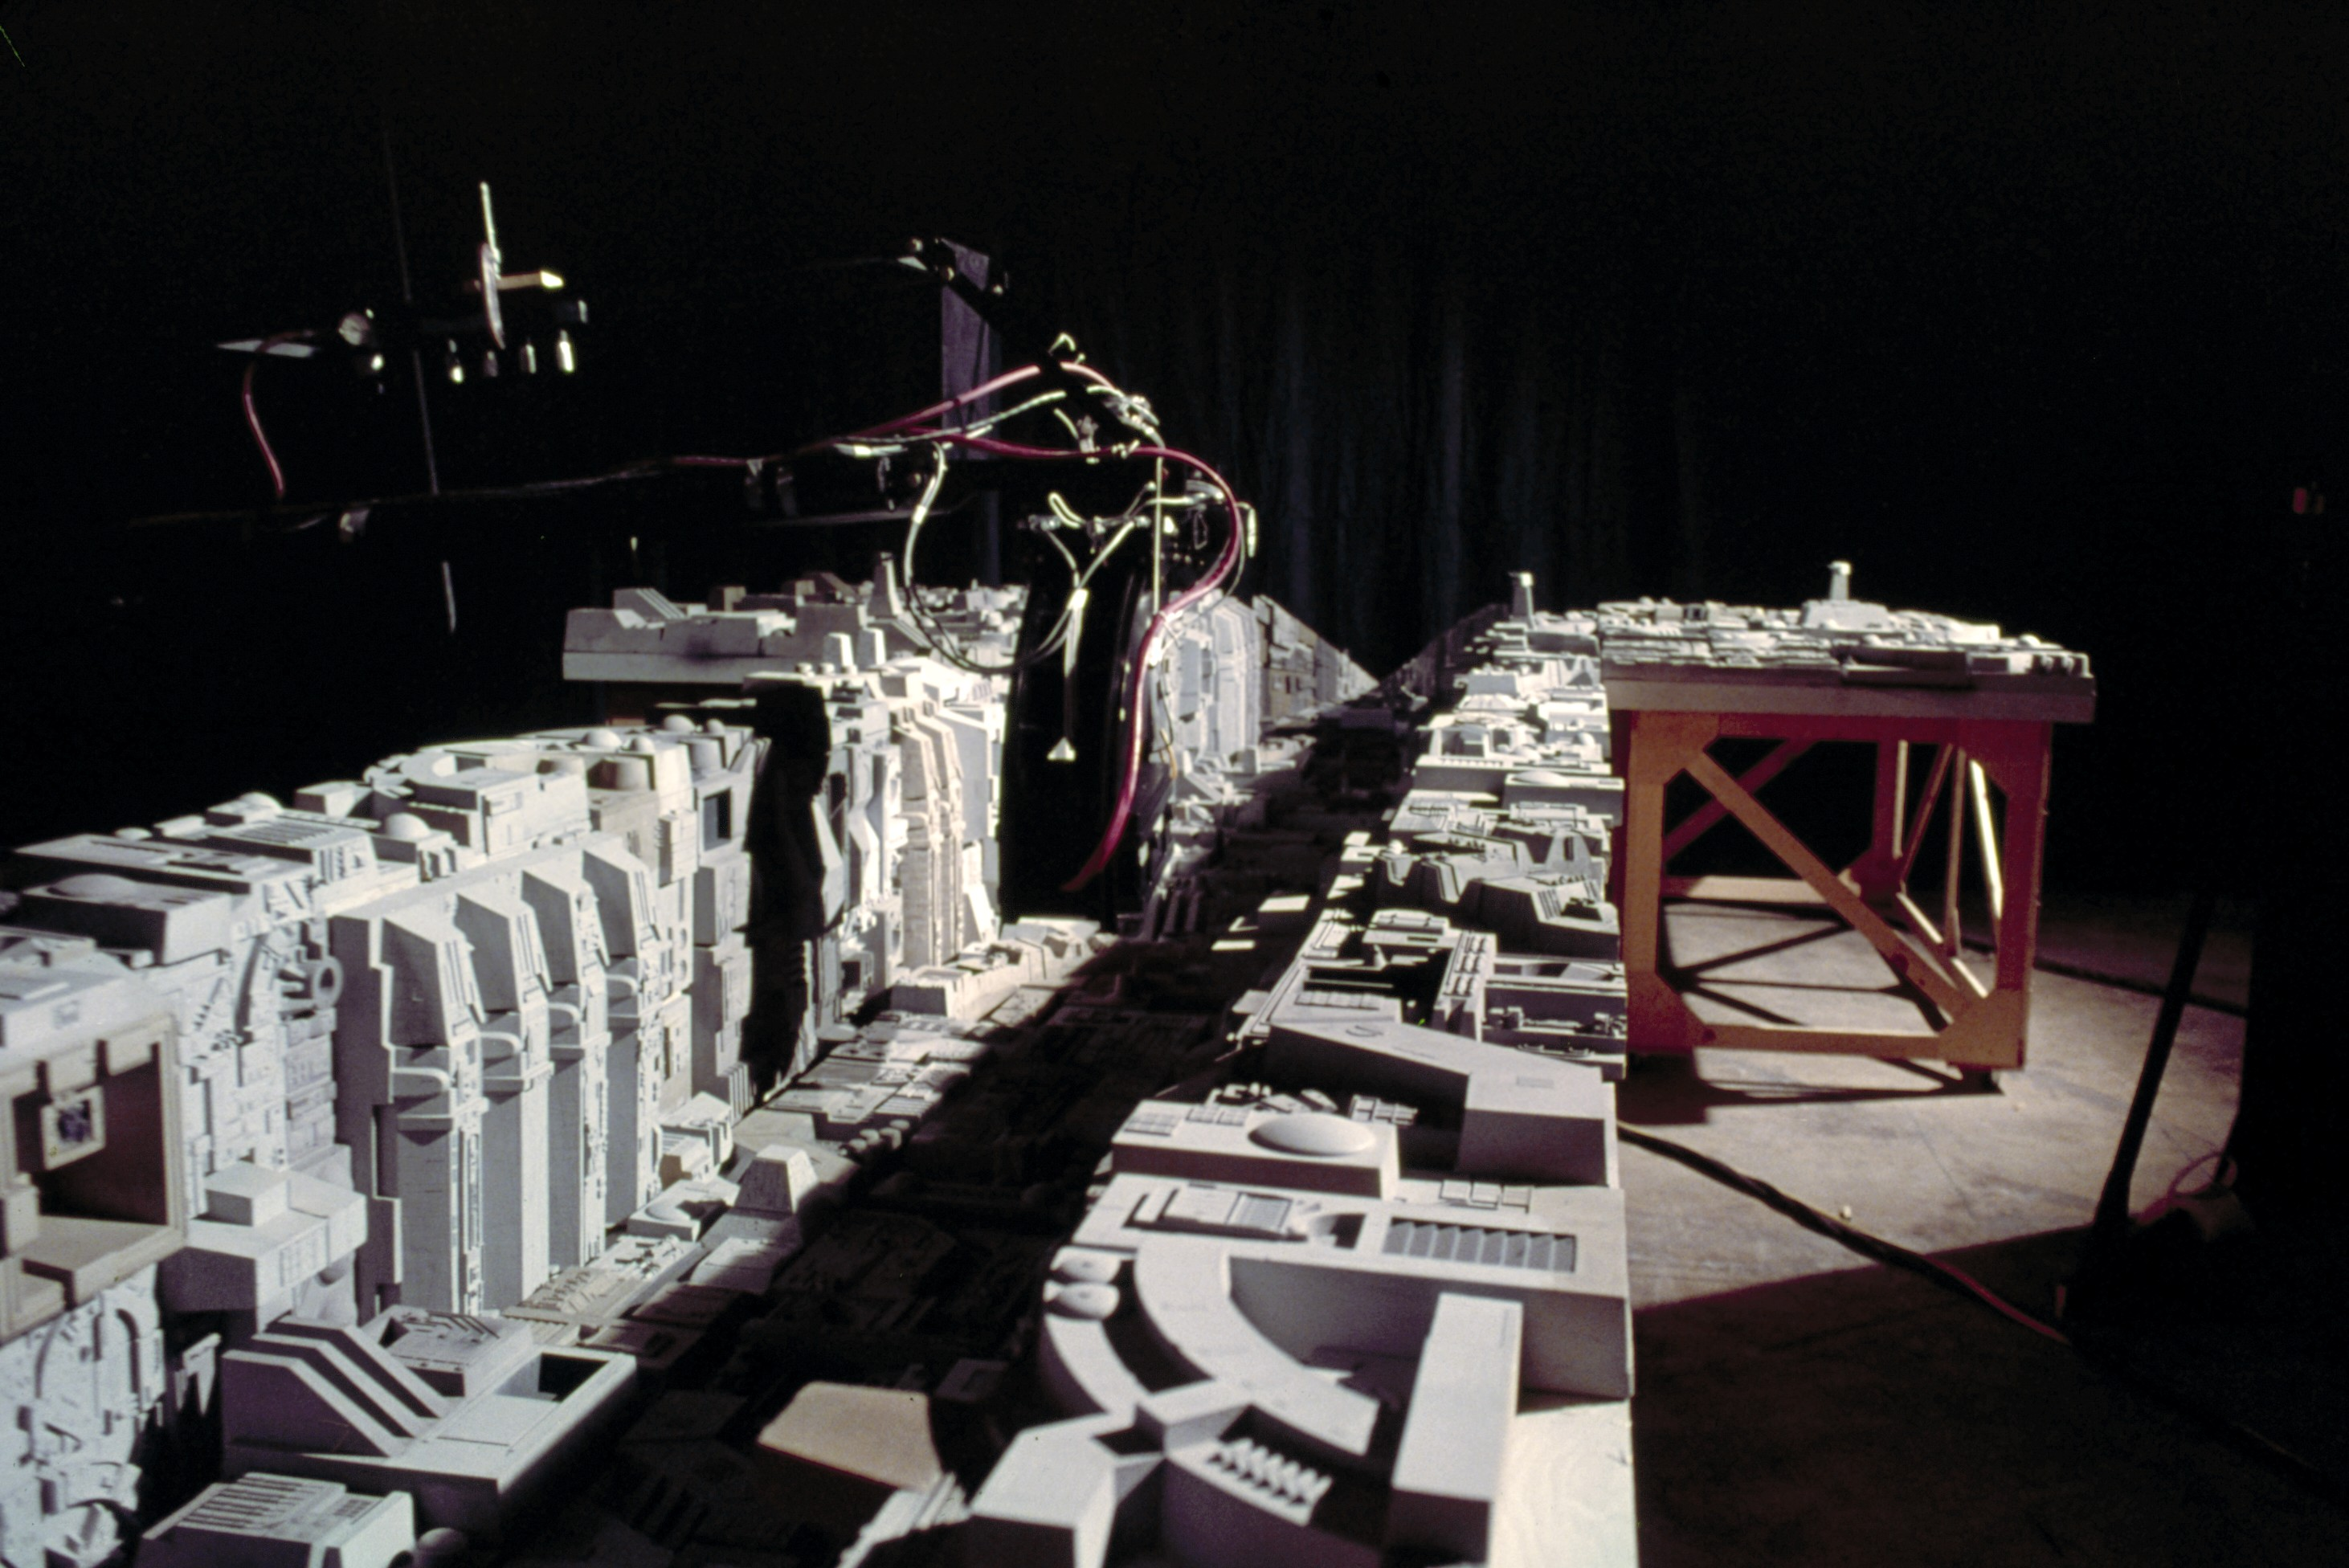 special effects in film and television study guide